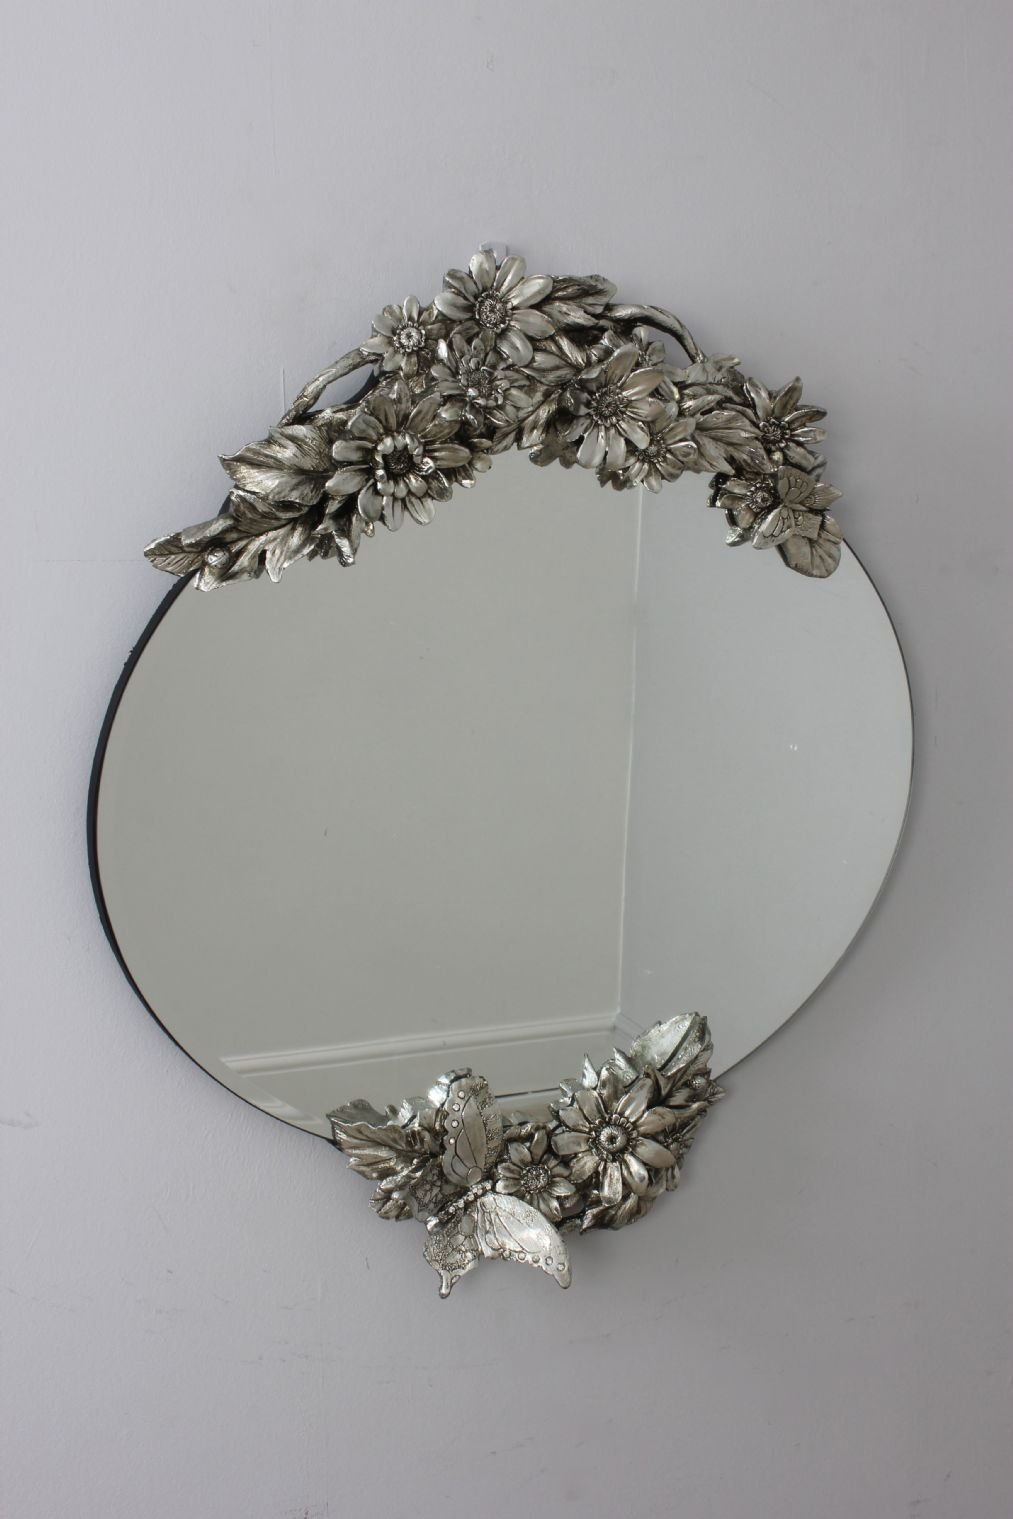 Silver Vintage Style Oval Frameless Wall Mirror With Flowers Pertaining To Vintage Frameless Mirrors (Image 12 of 15)